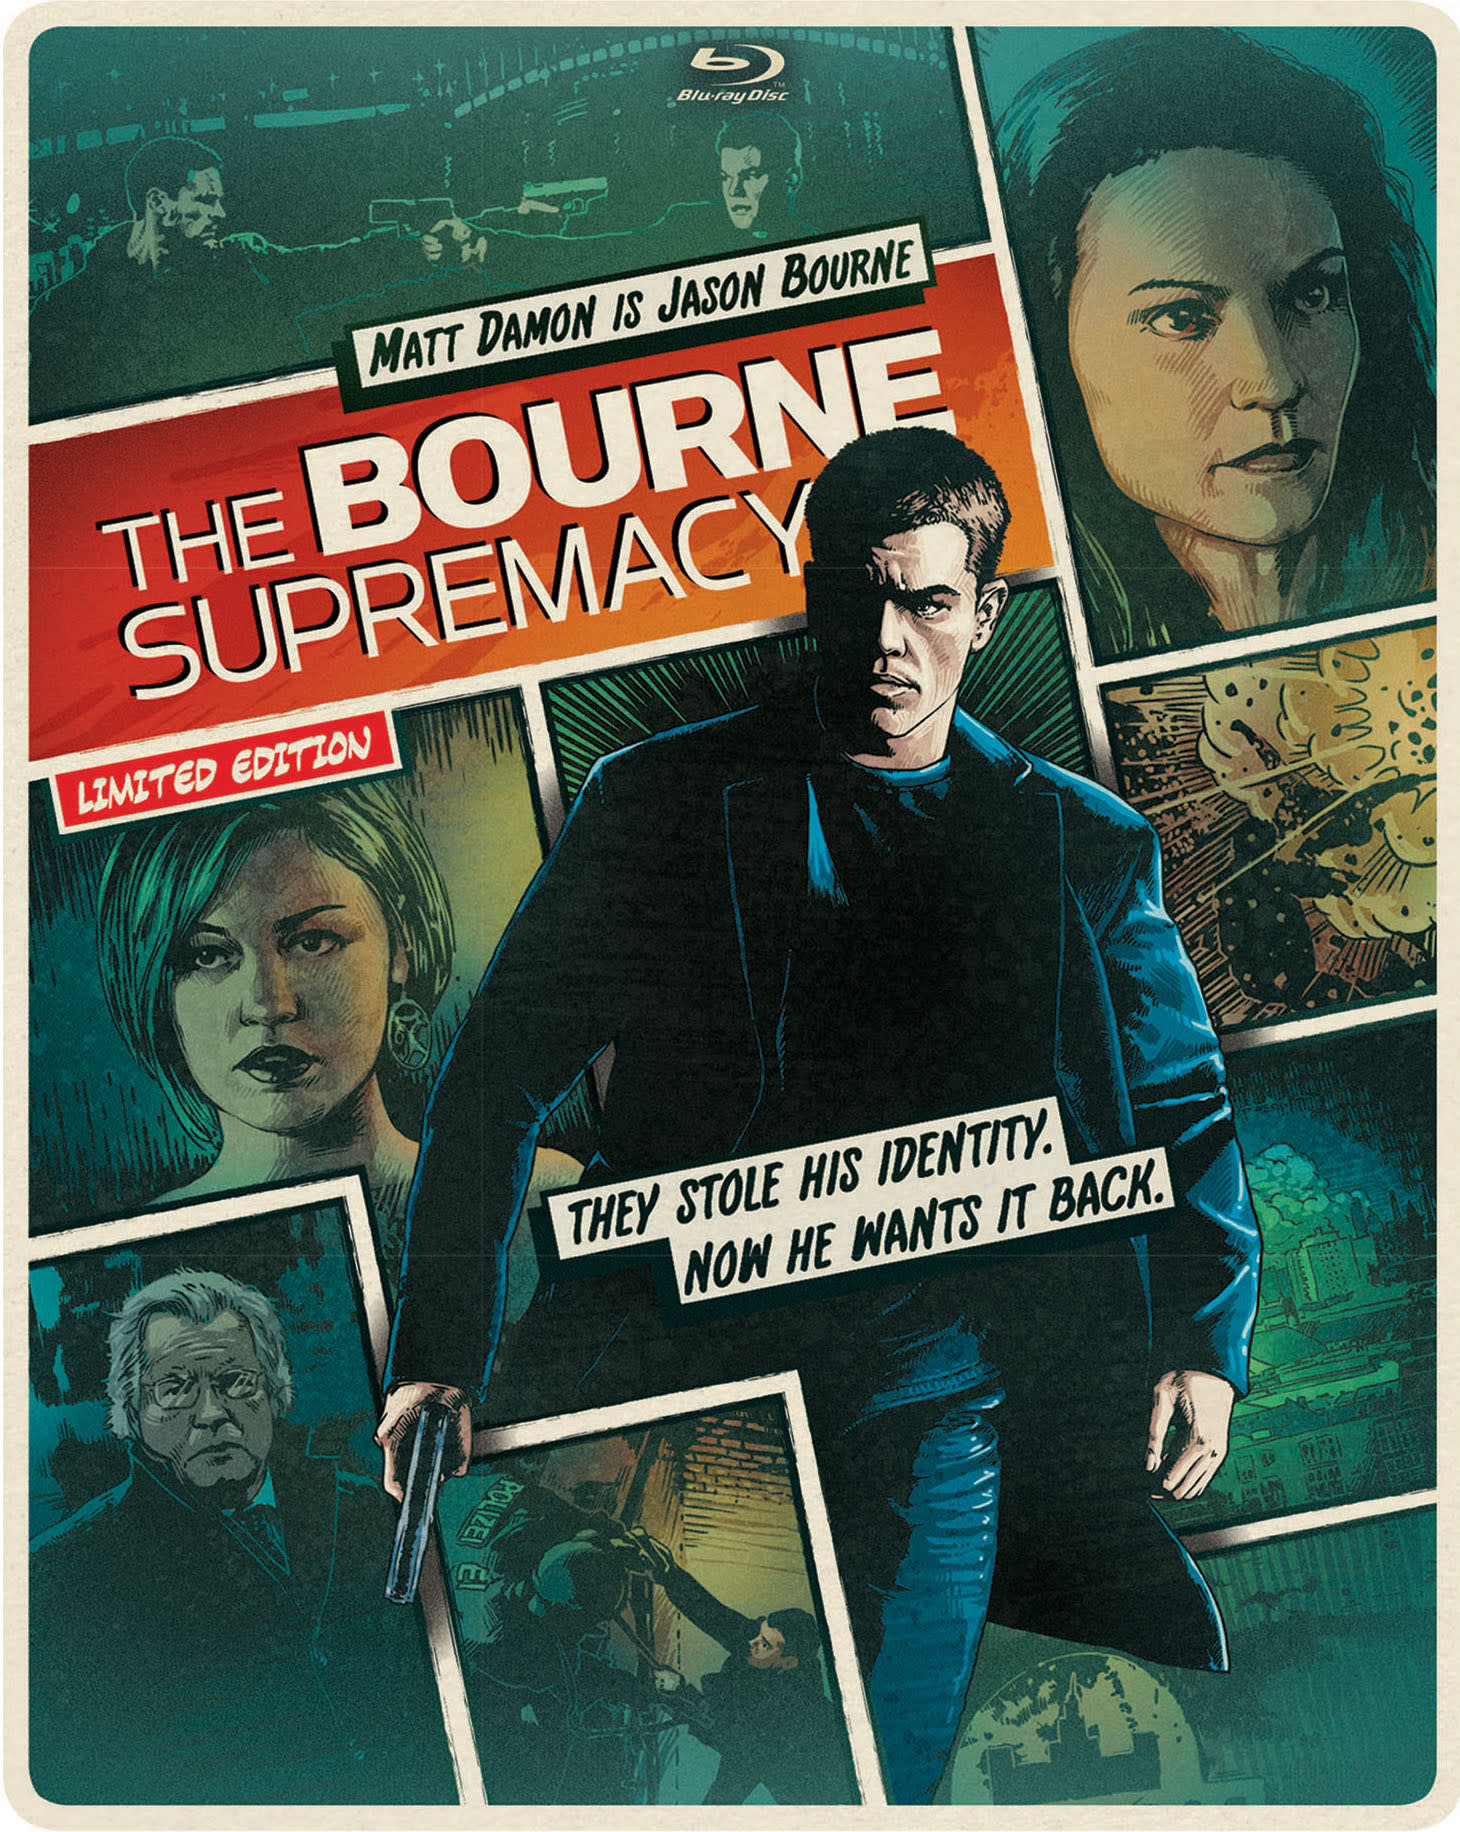 The Bourne Supremacy (Limited Edition Comic Art Steelbook) [Blu-ray]